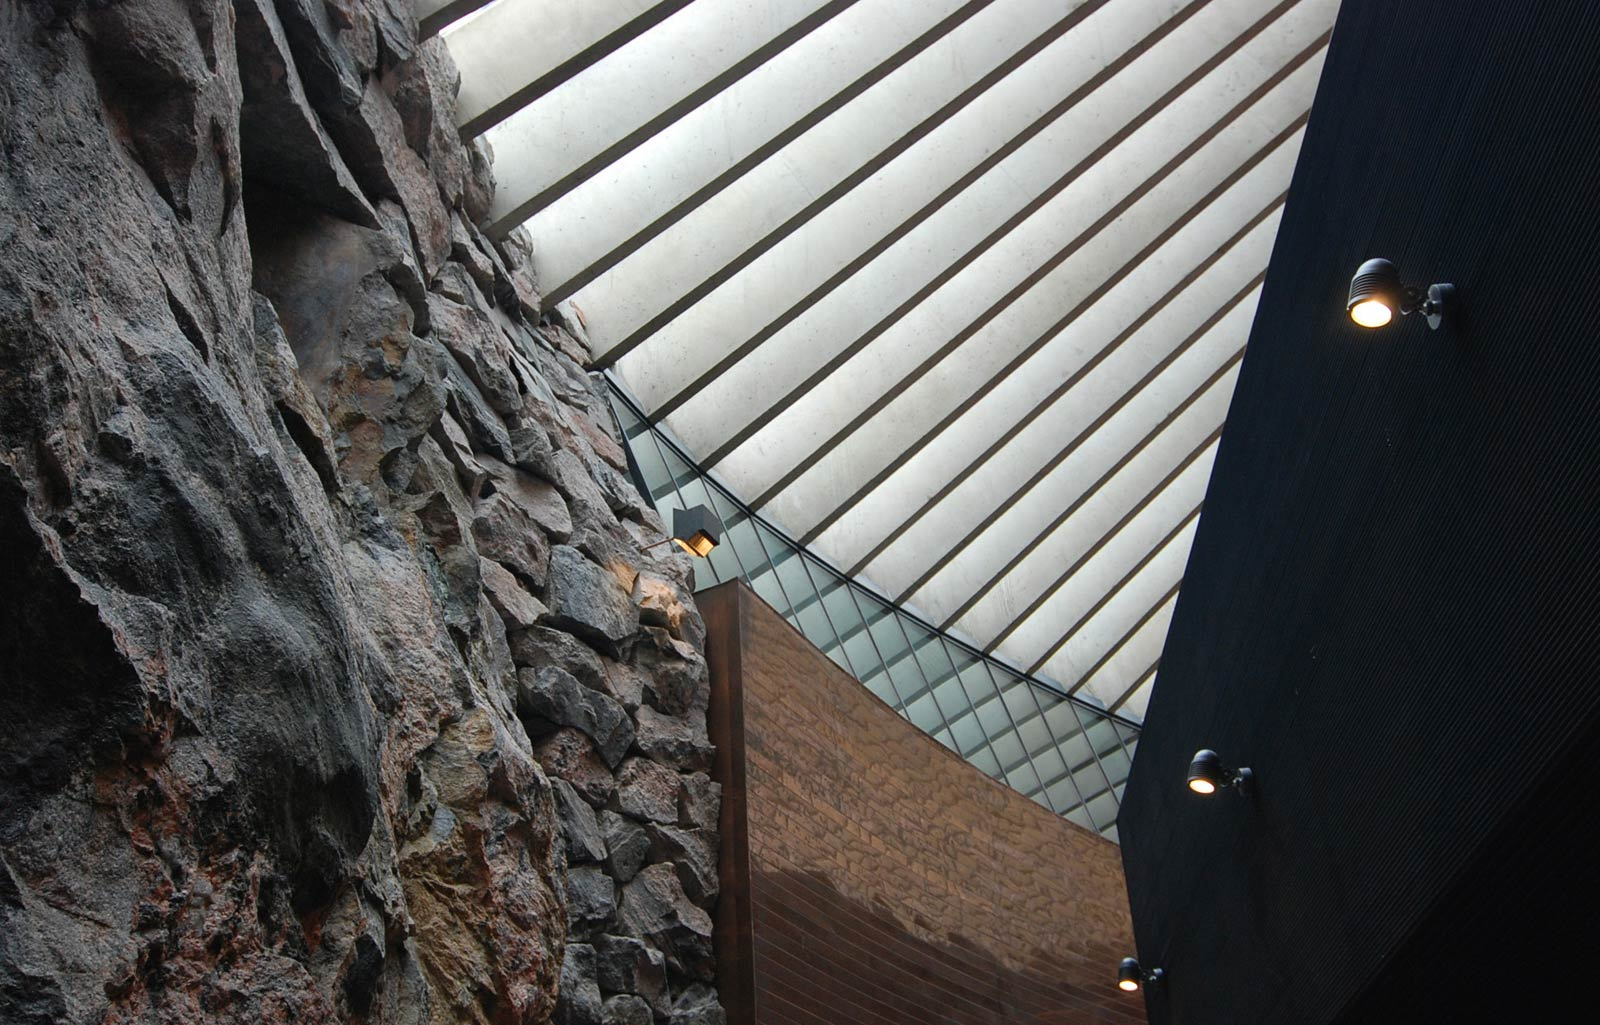 Temppelinaukion-Church